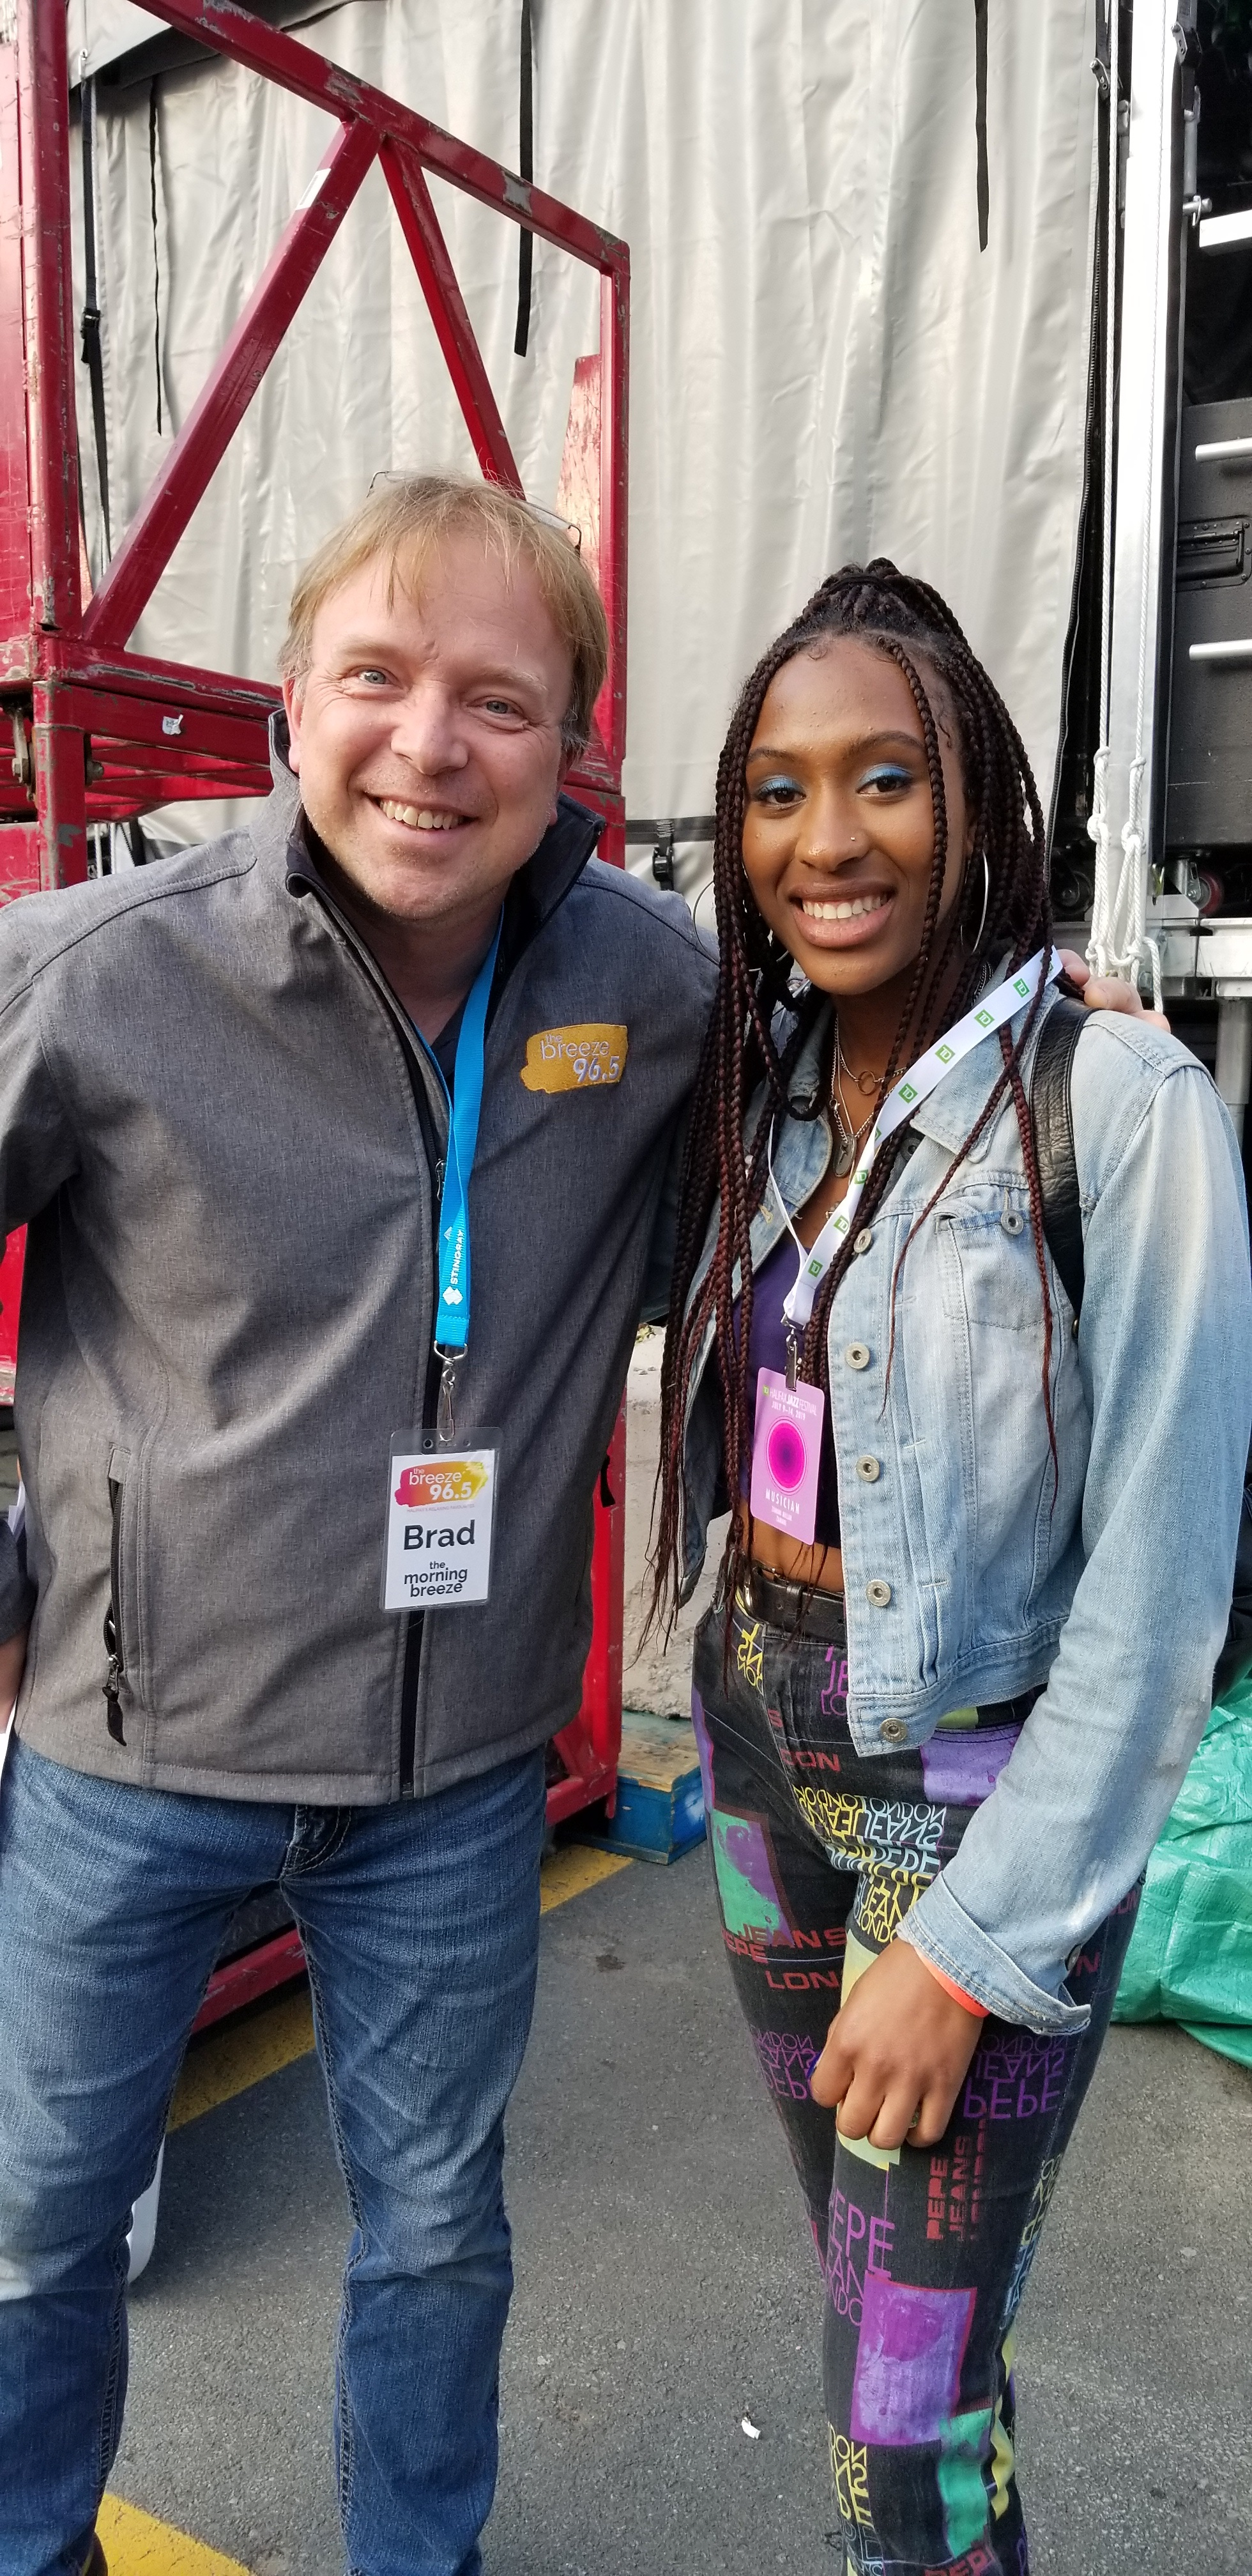 Brad Dryden (96.5 The Breeze) & Zamani (Stingray Rising Stars winner)